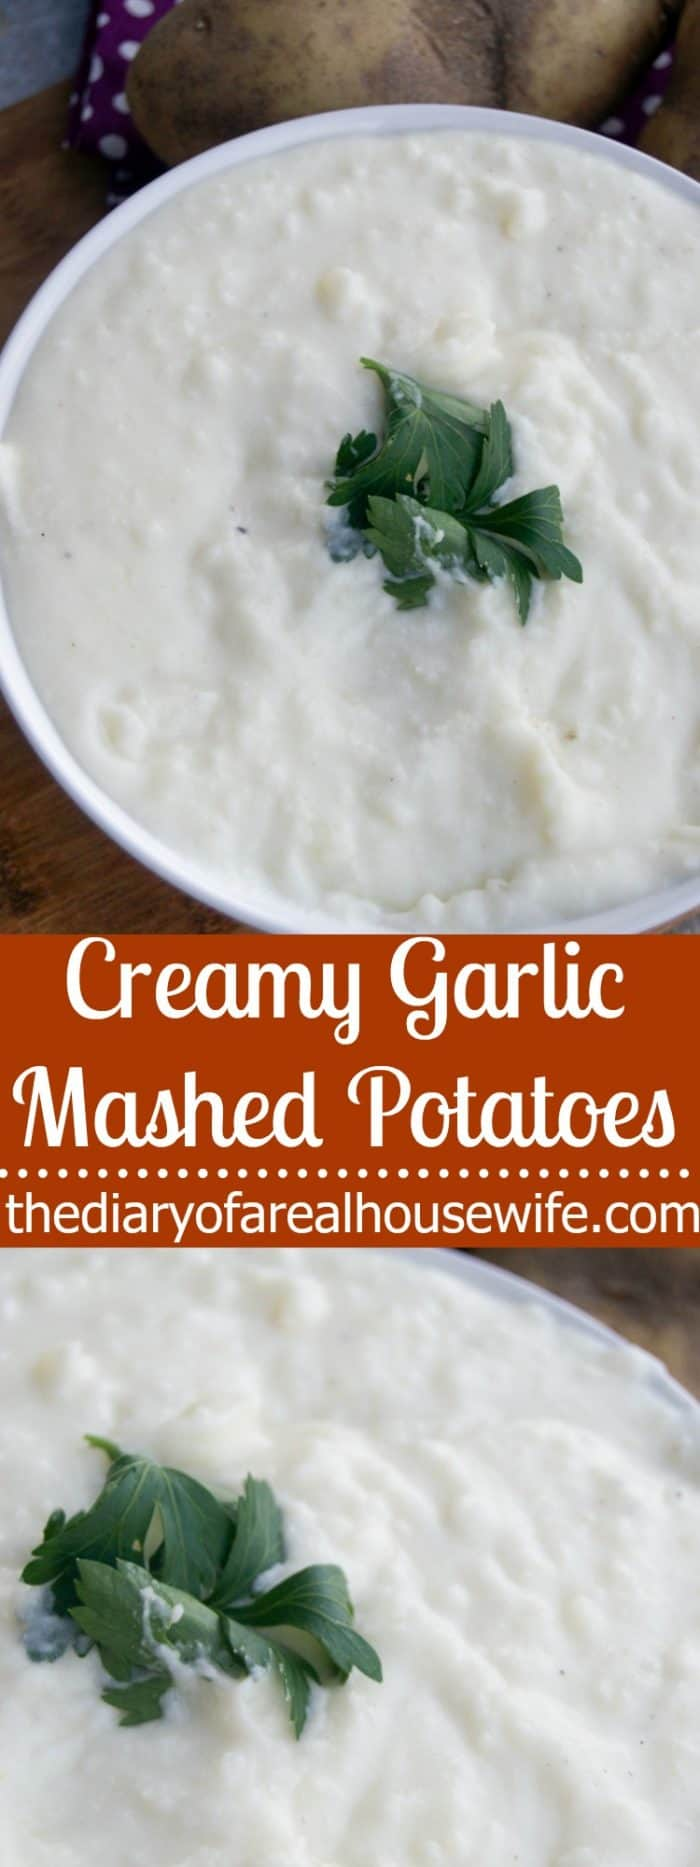 These creamy garlic mashed potatoes are absolutely delicious!